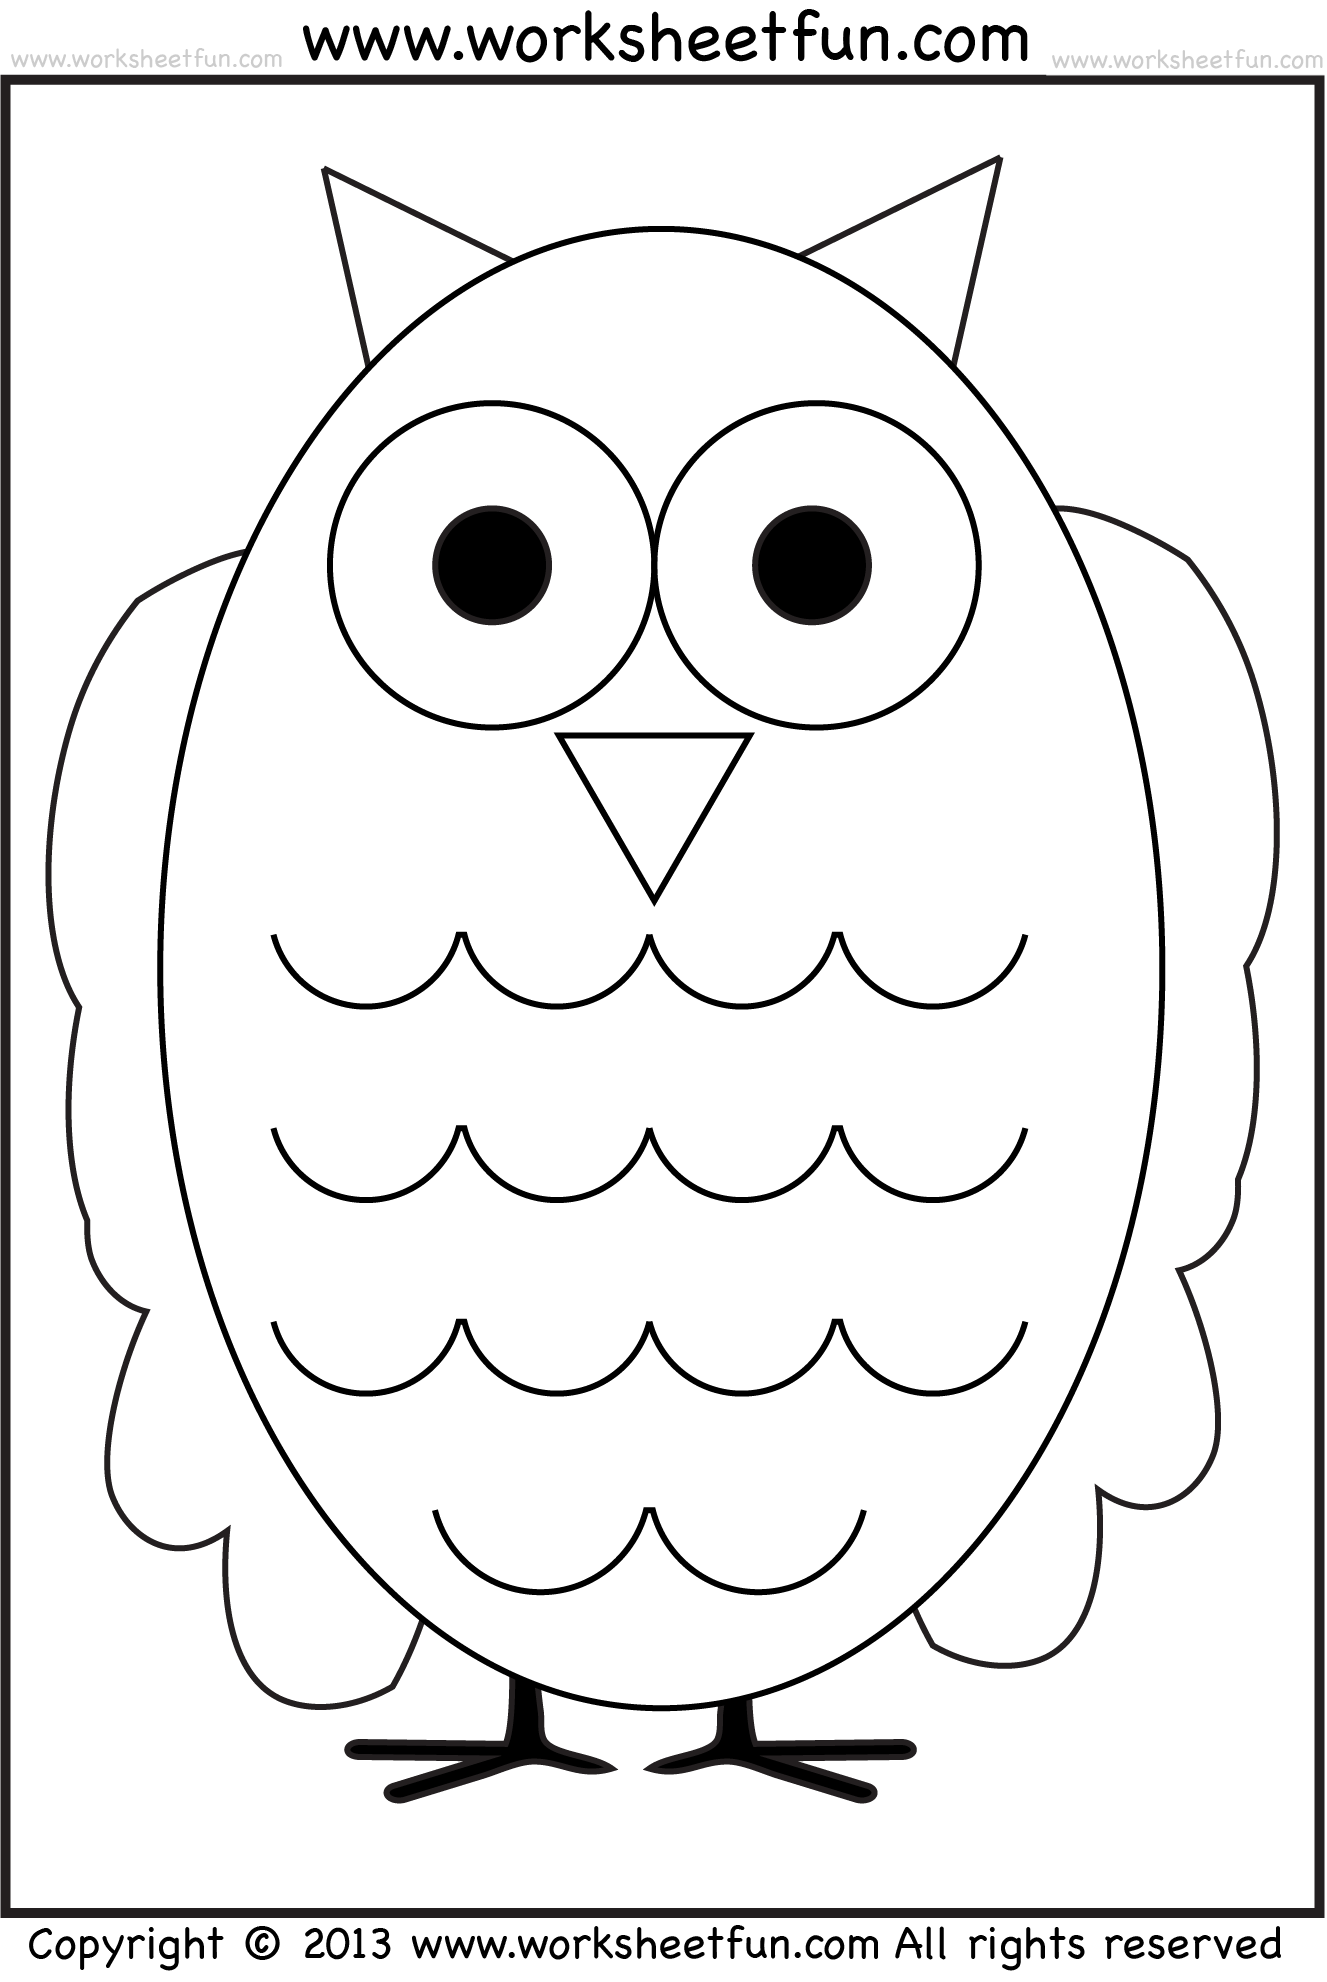 Tracing Bat Worksheets For Preschool Coloring Page Tracing Best Free Printable Worksheets